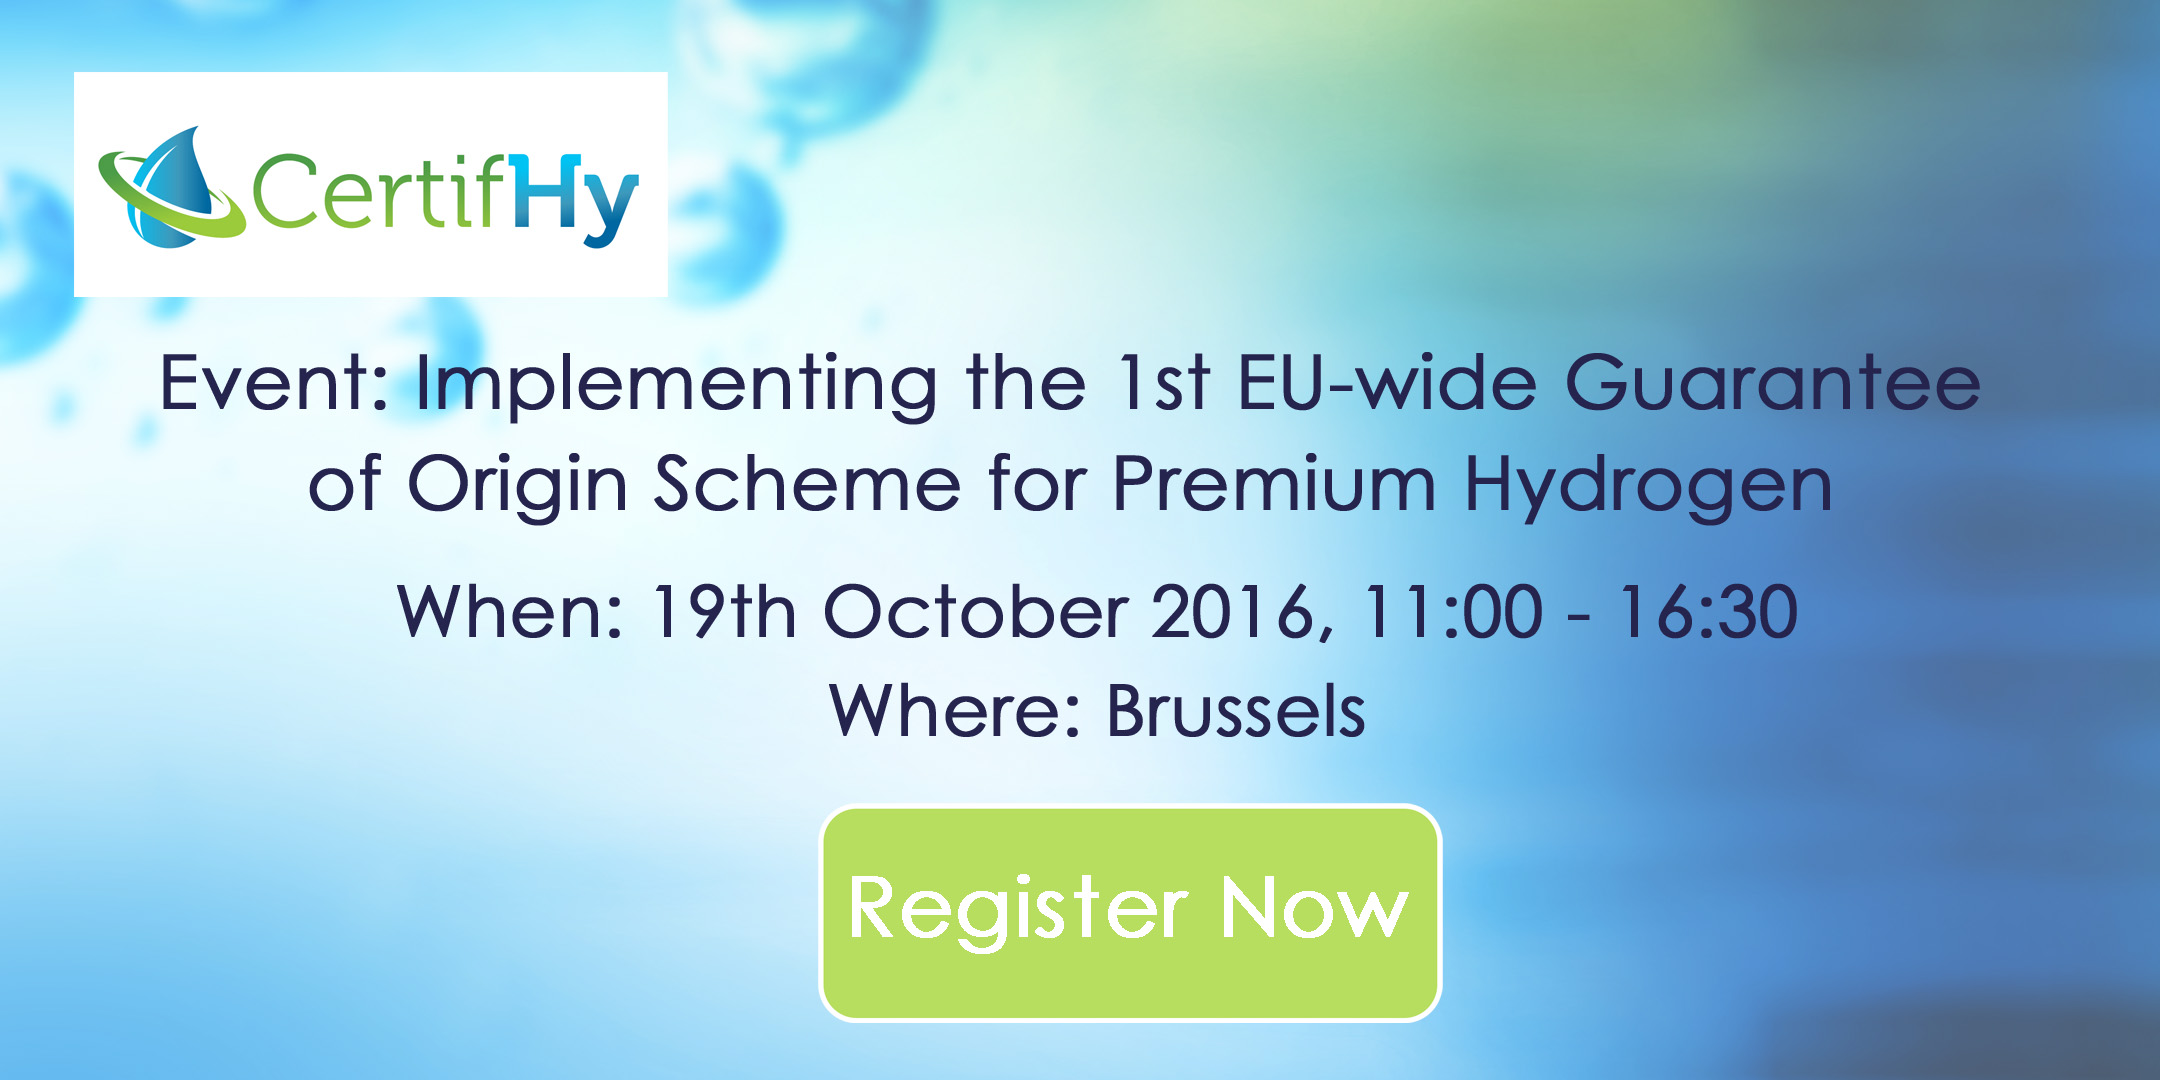 HINICIO Organizes Final CertifHy Event, 19th October, Brussels